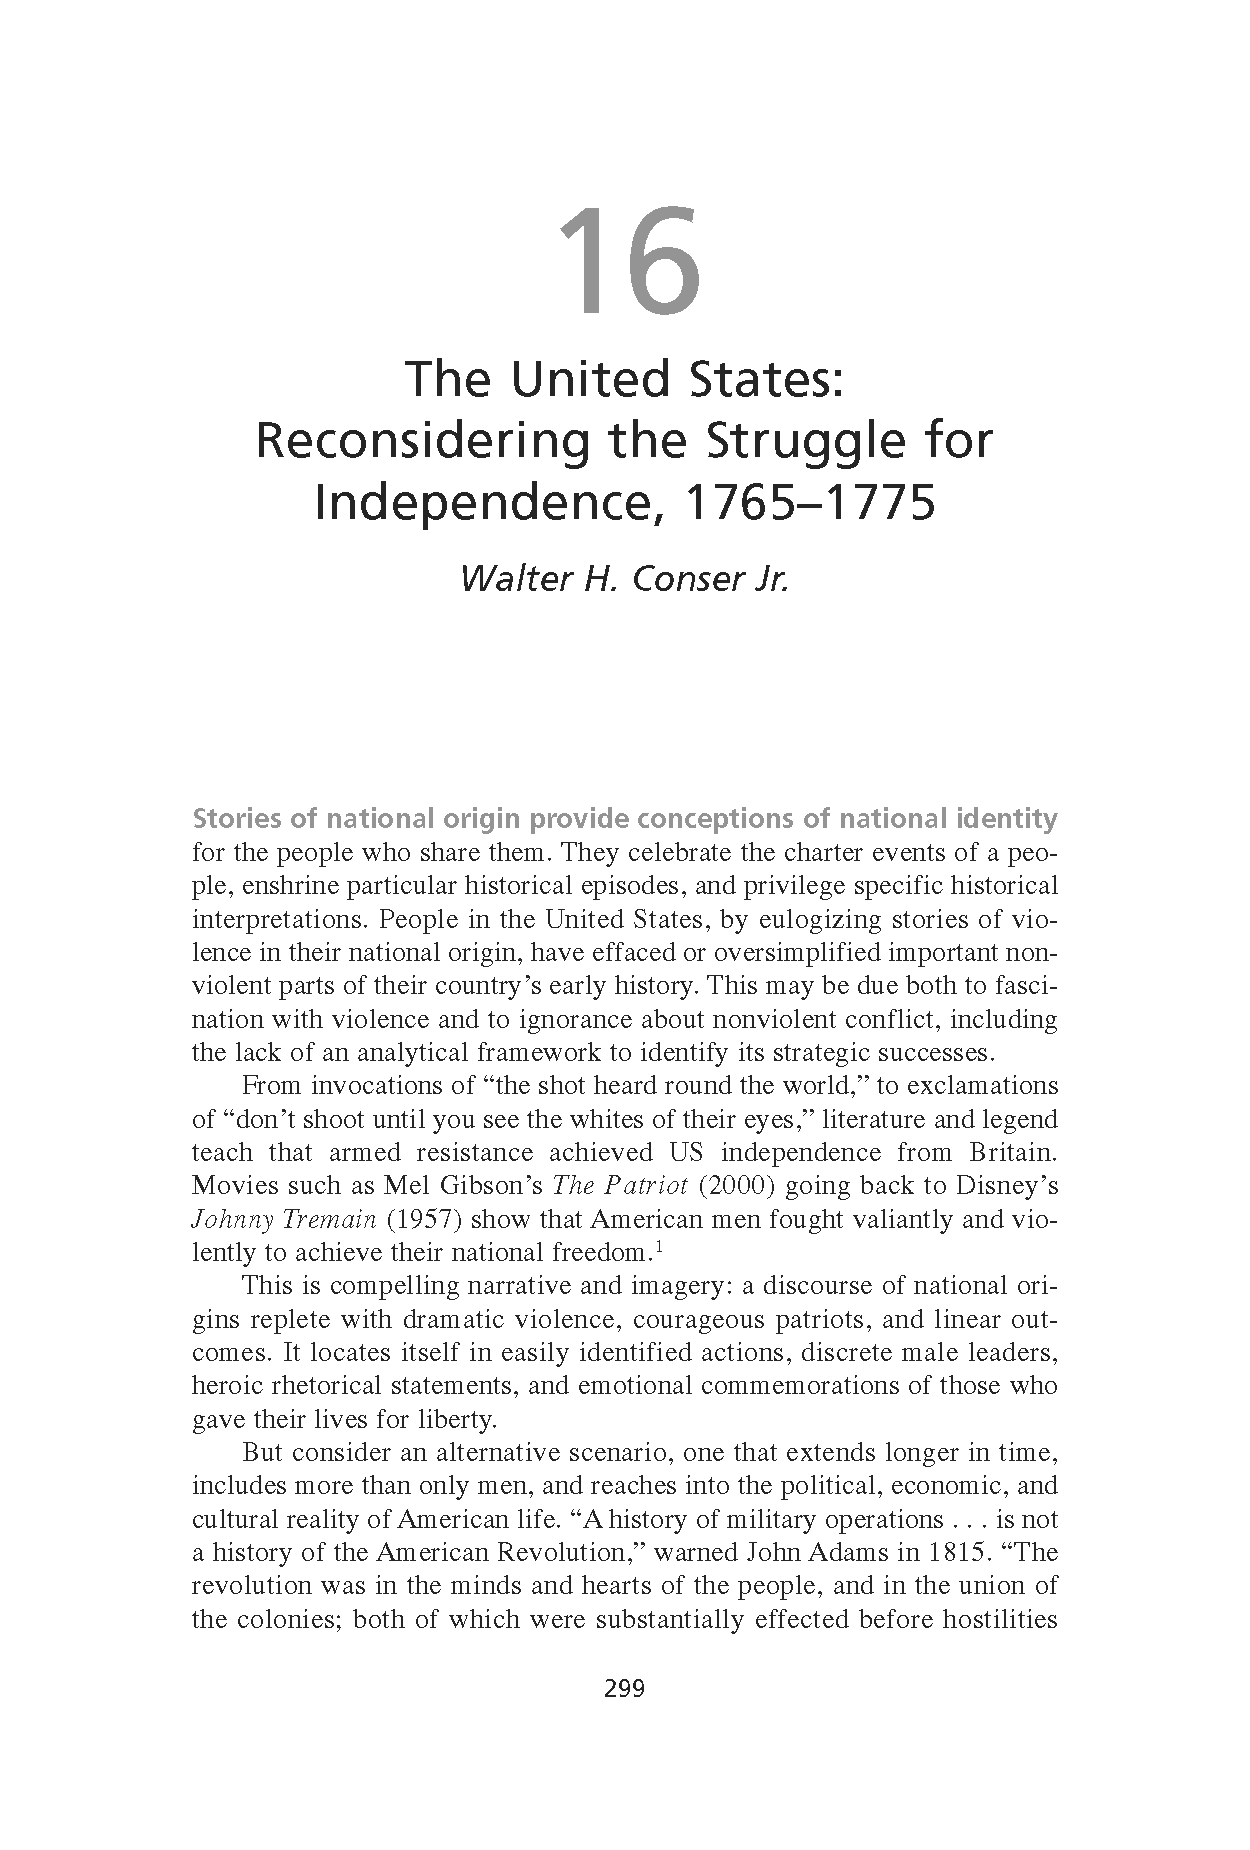 The United States: Reconsidering the Struggle for Independence, 1765-1775 (Chapter 16 from 'Recovering Nonviolent History')